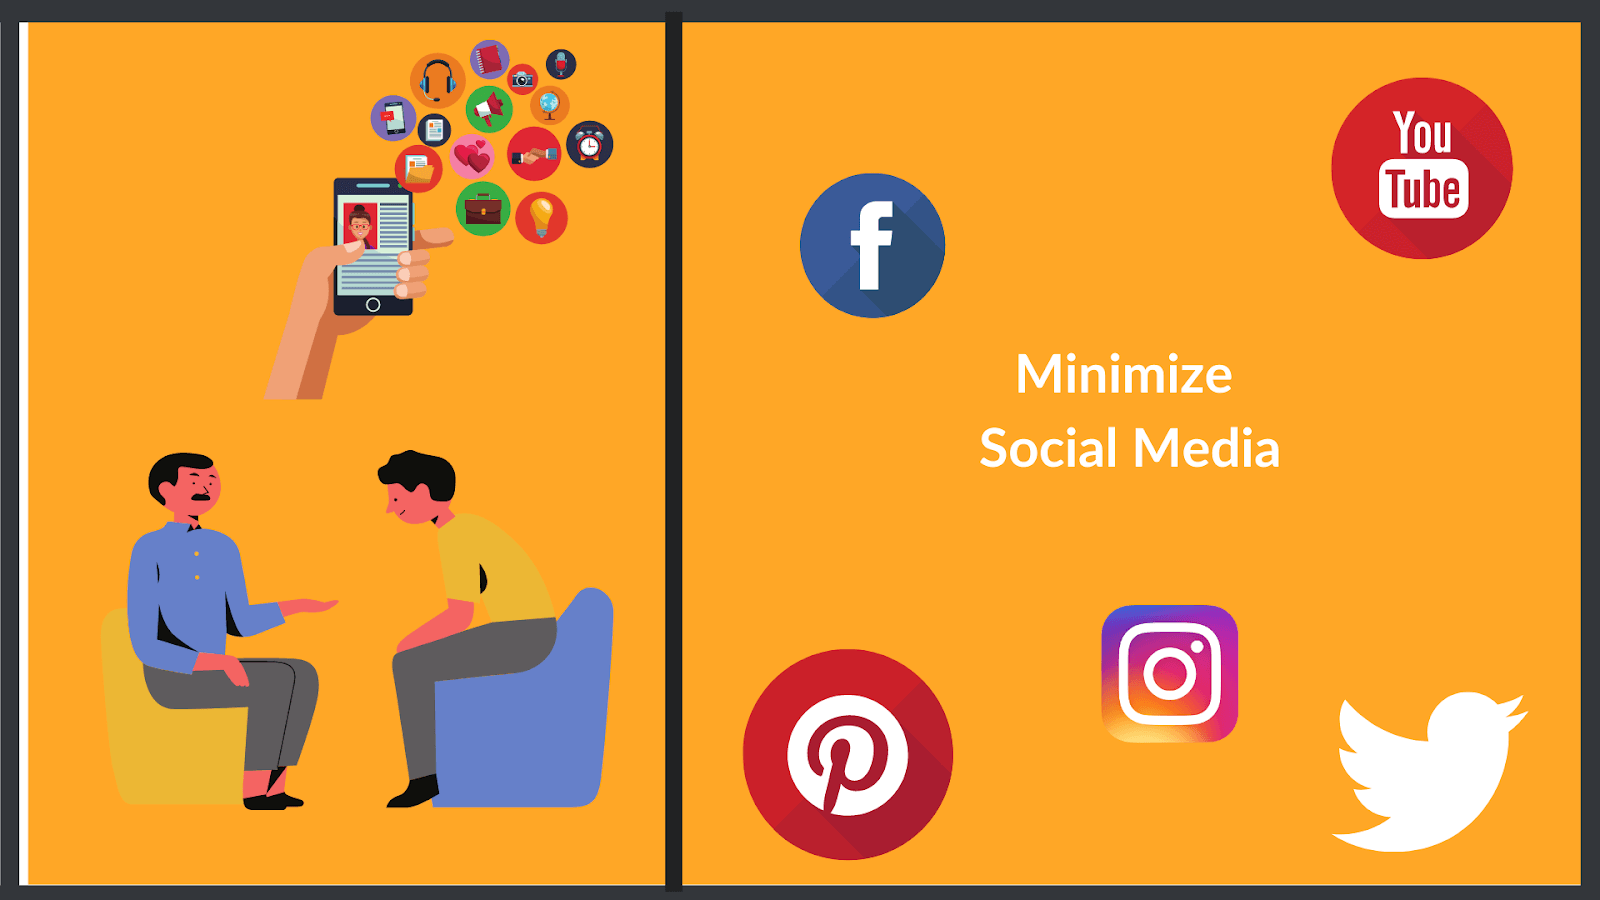 Minimize social media to stay productive while working from home